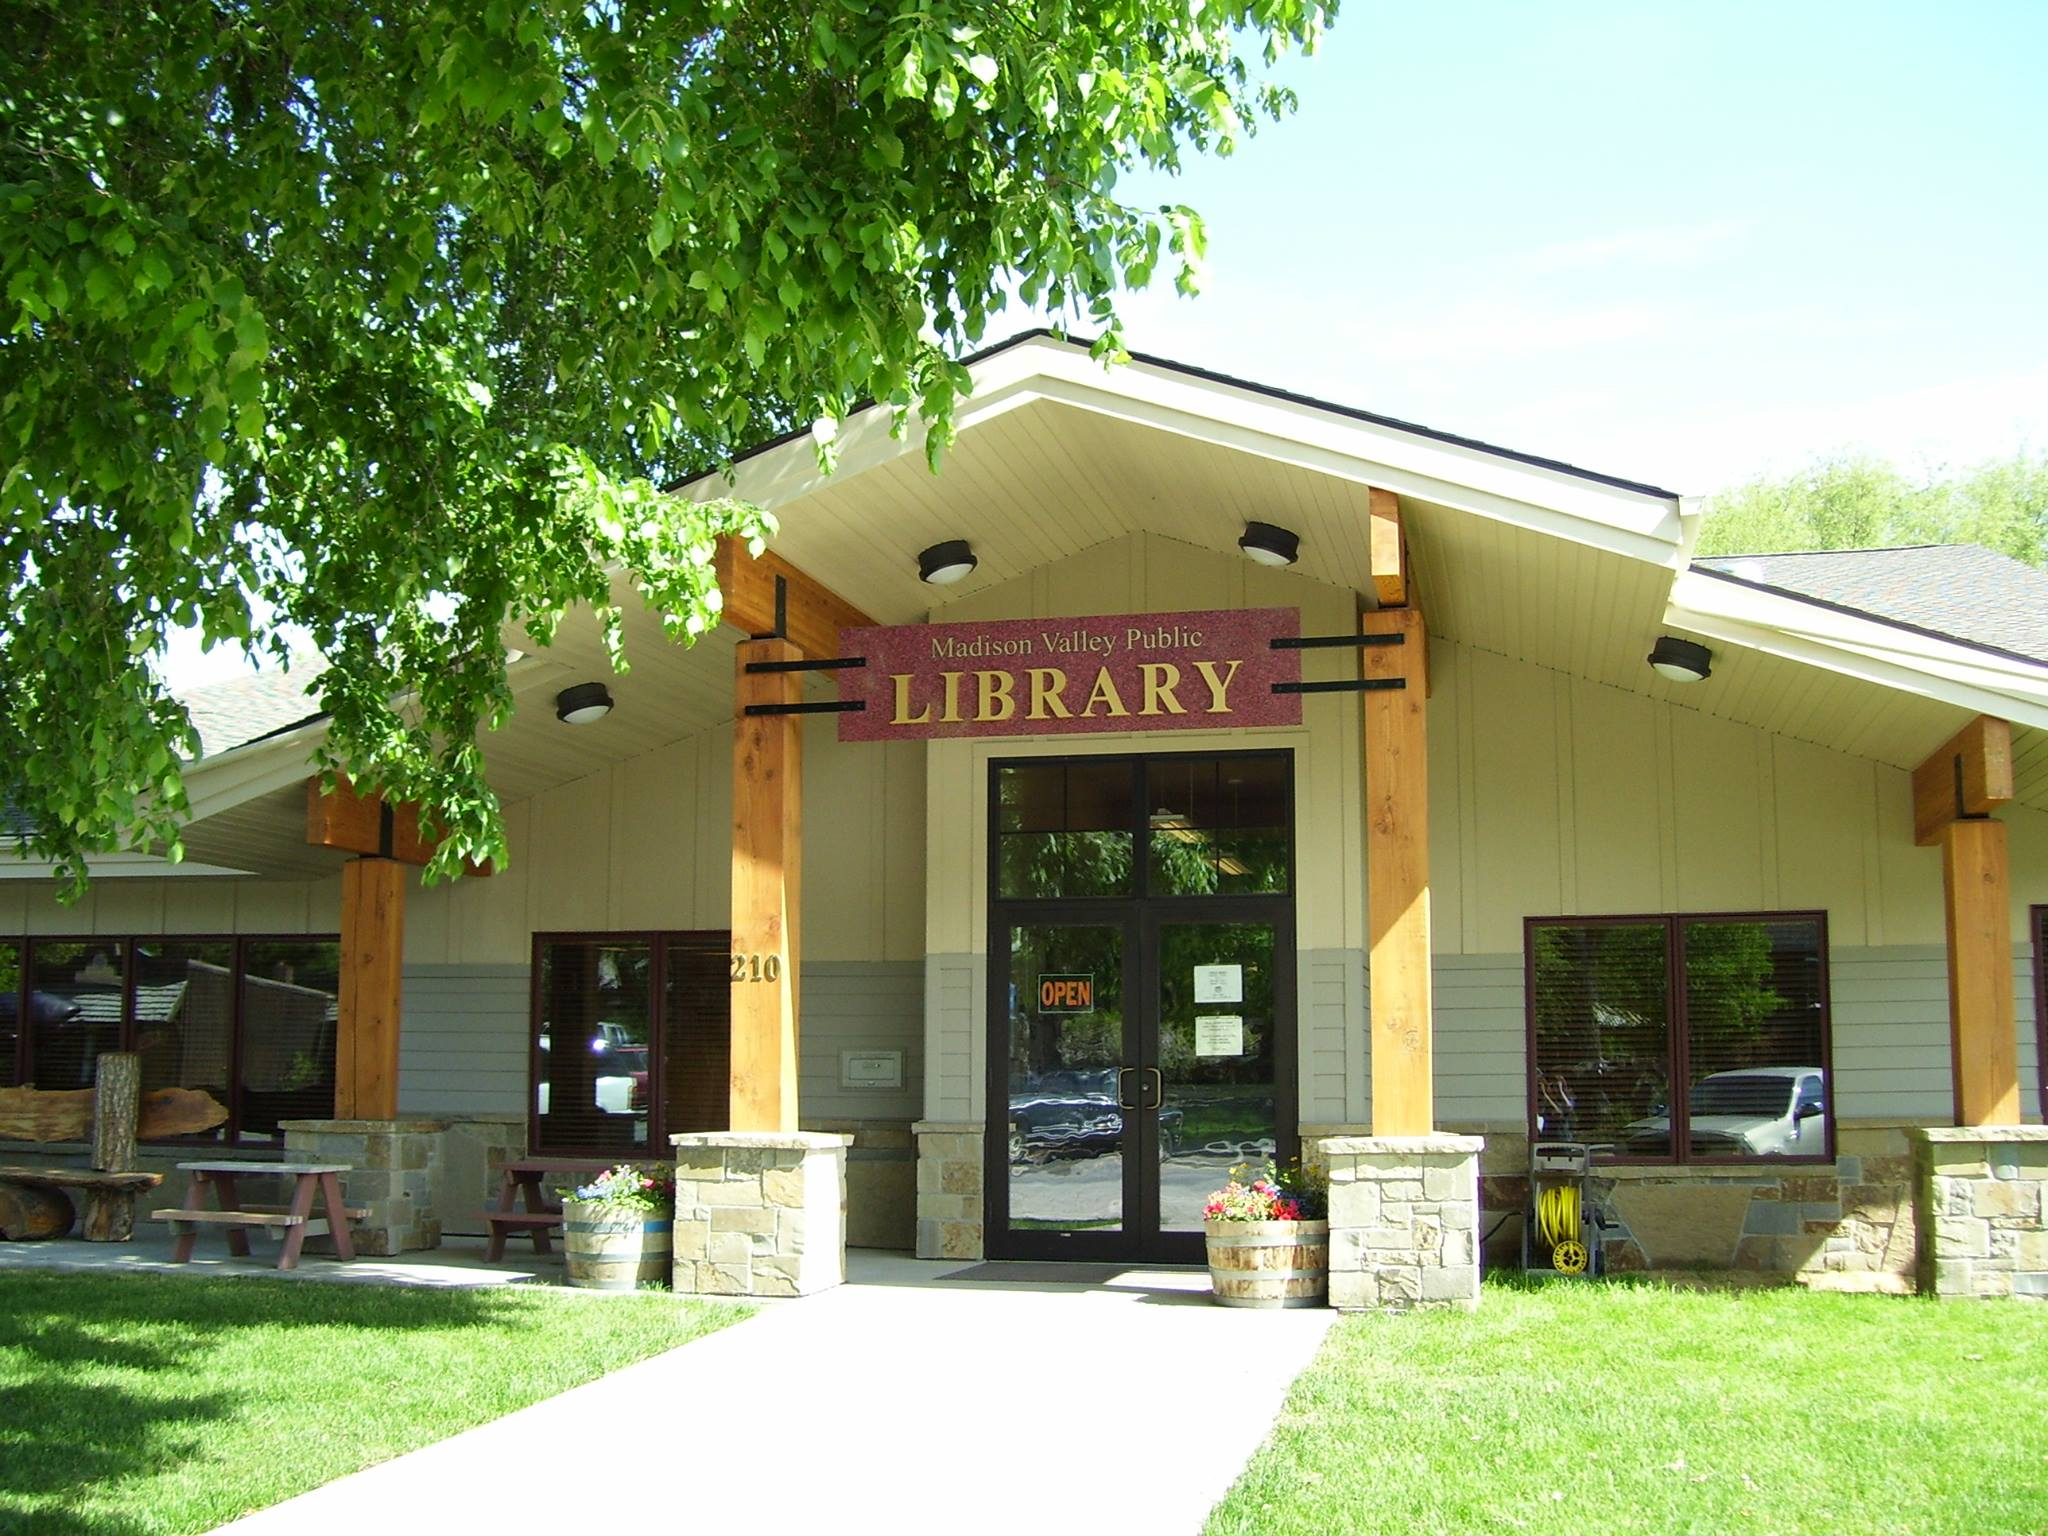 Madison Valley Public Library